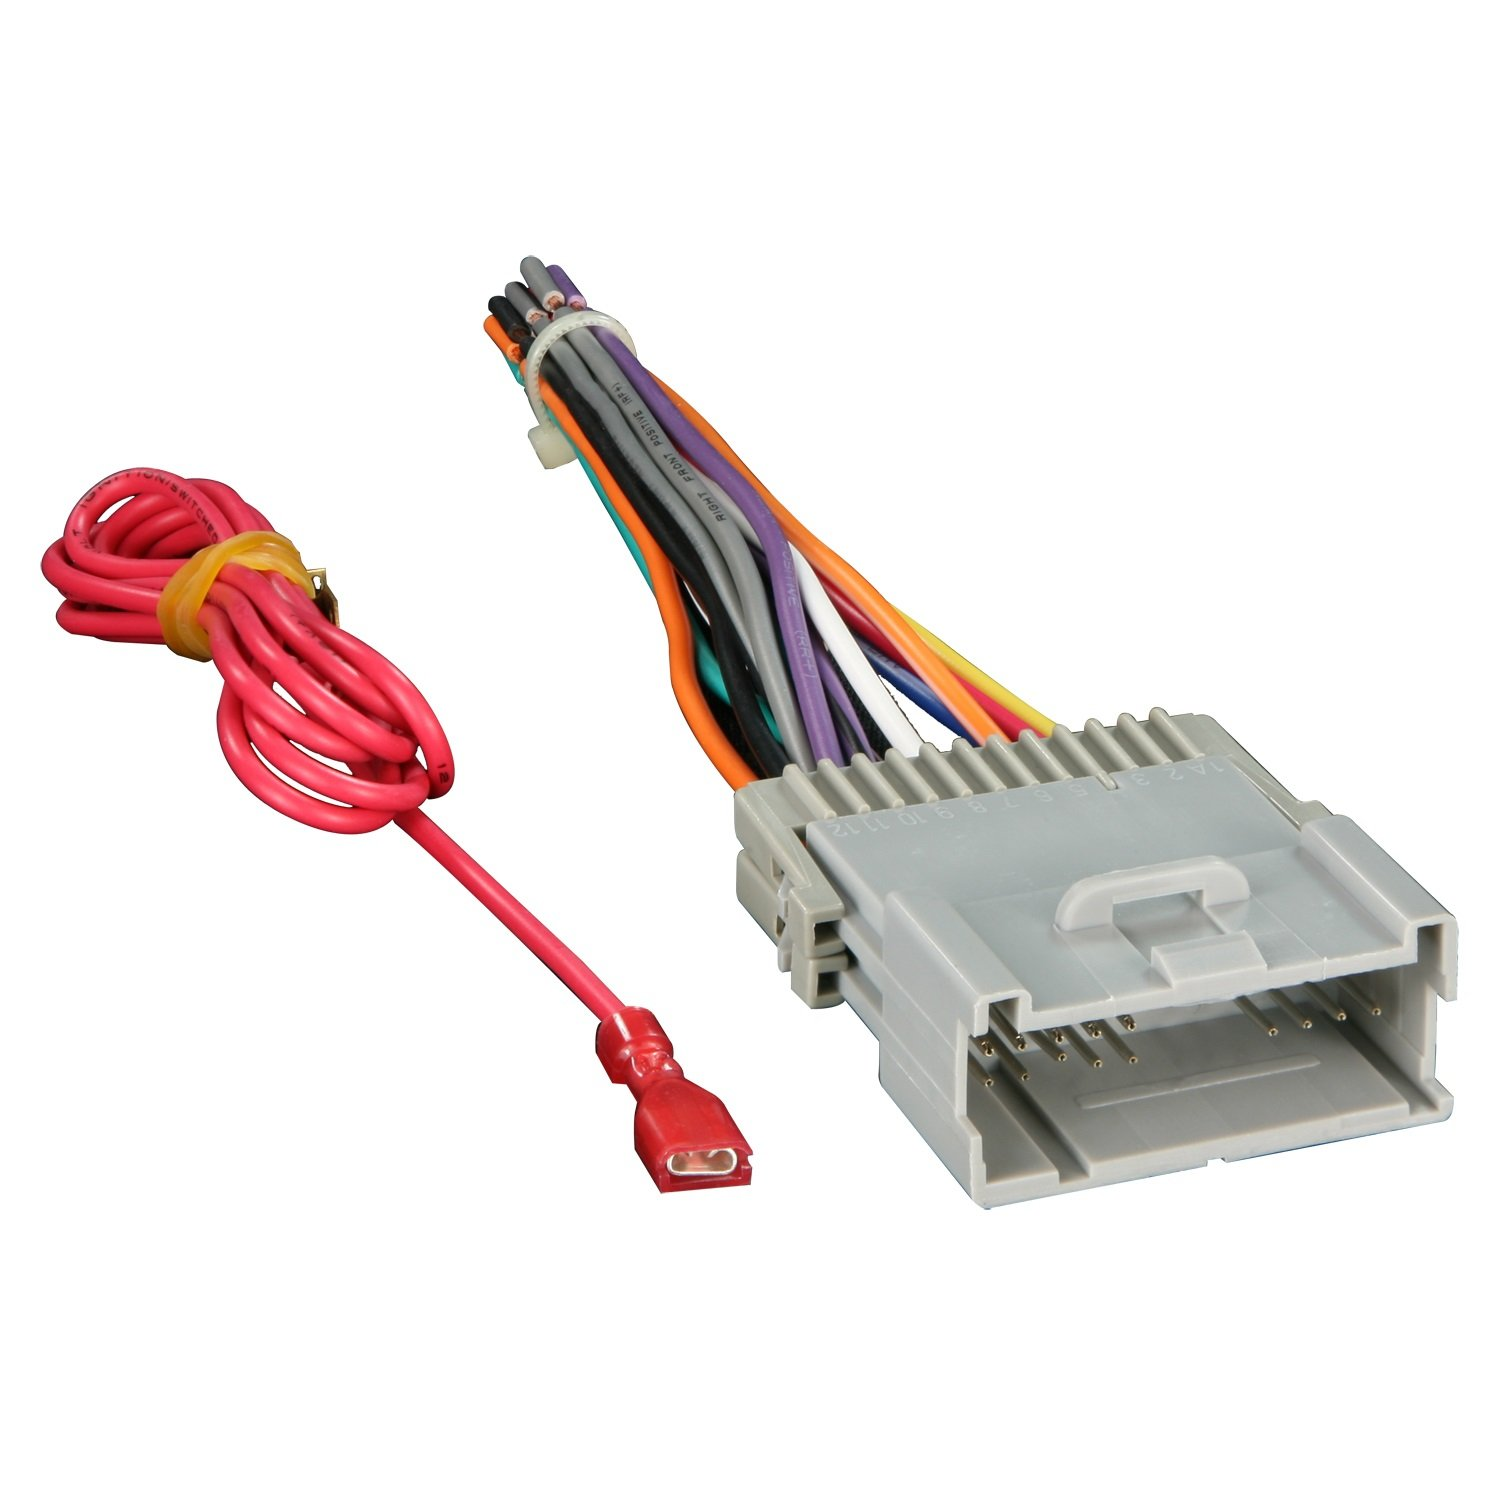 61eewxp9orL._SL1500_ amazon com metra 70 2003 radio wiring harness for gm 98 08 2008 chevy impala stereo wiring harness at gsmportal.co